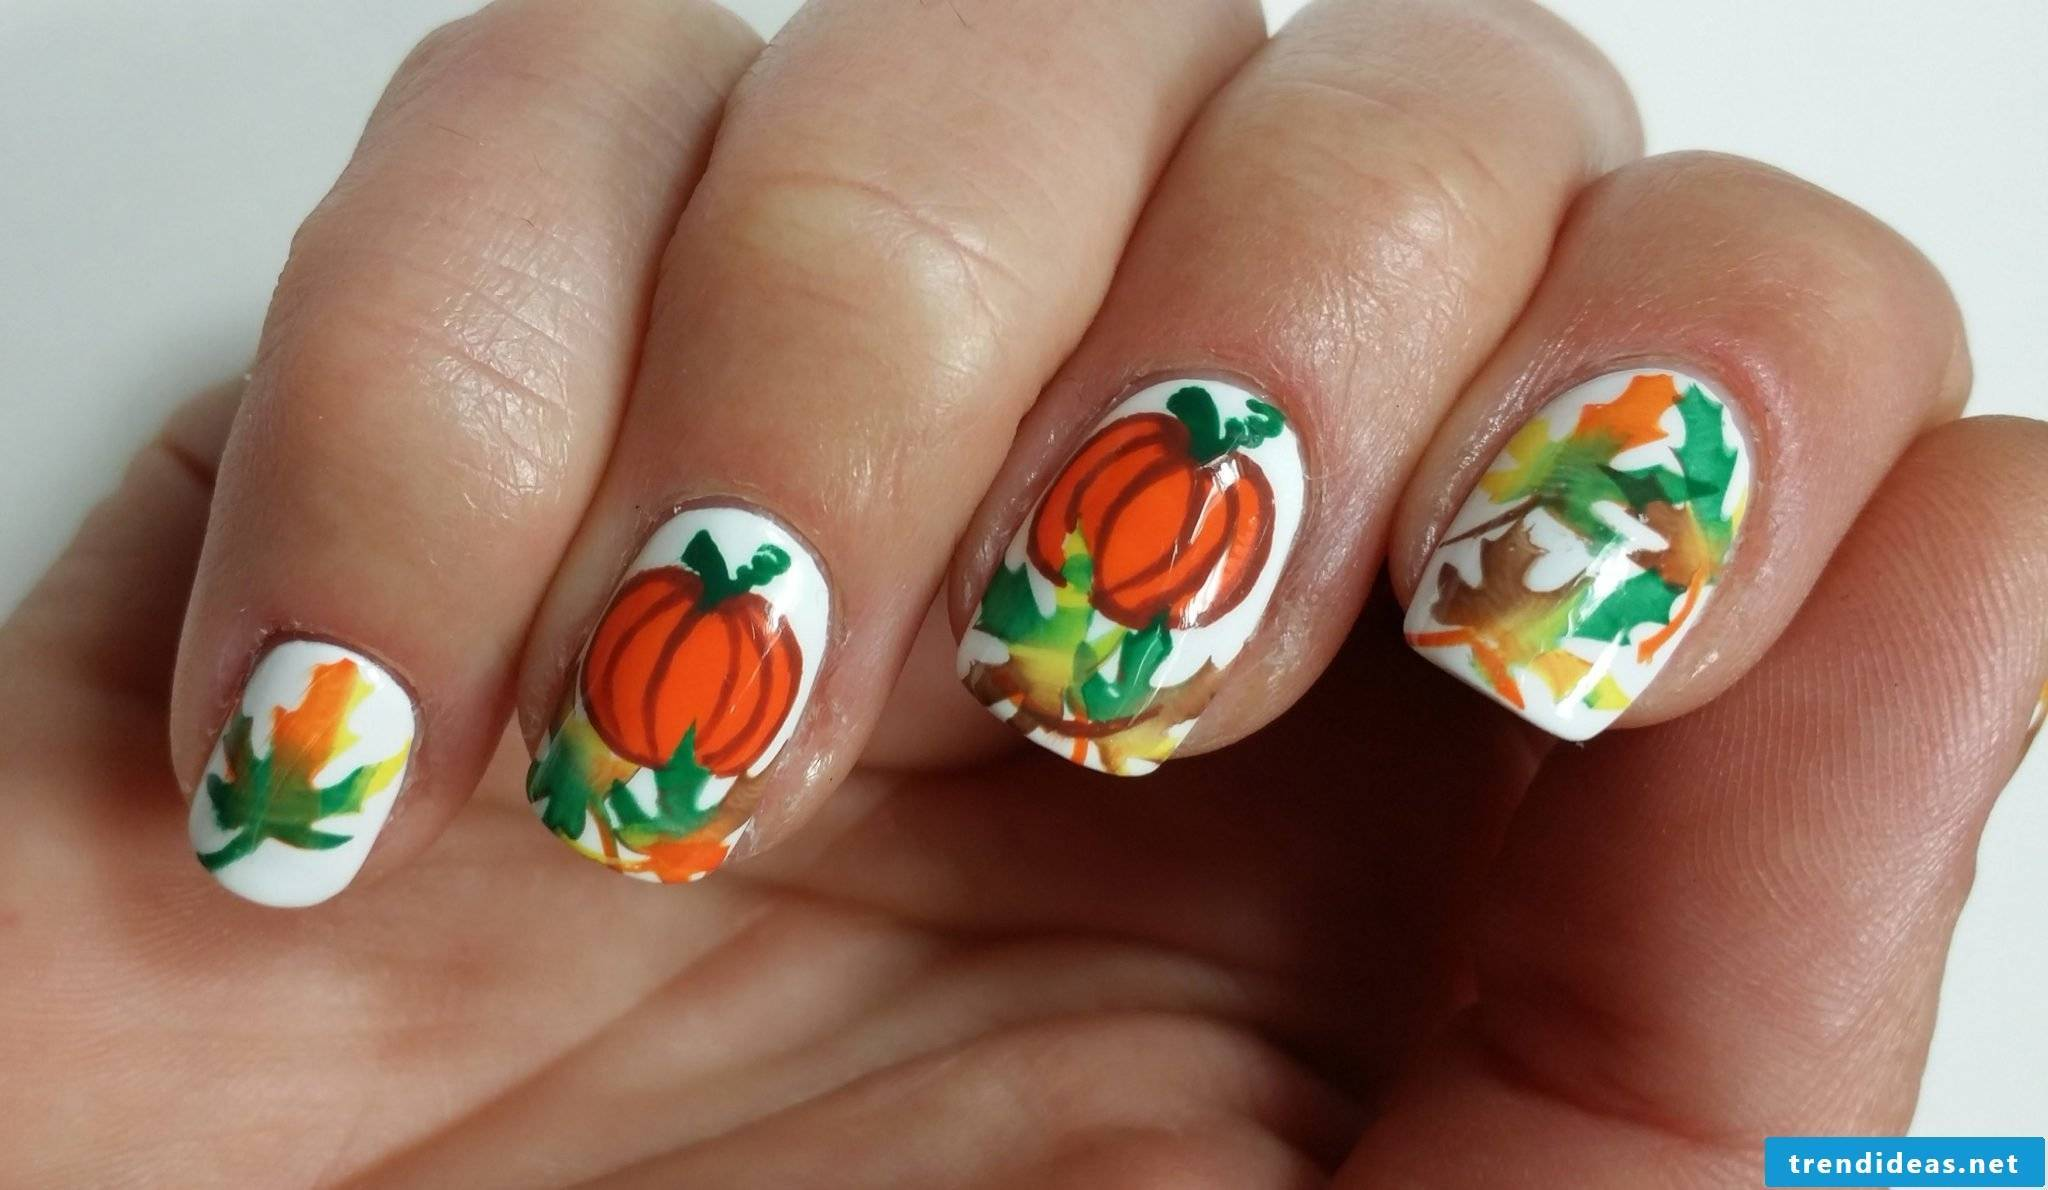 Paint Halloween nails